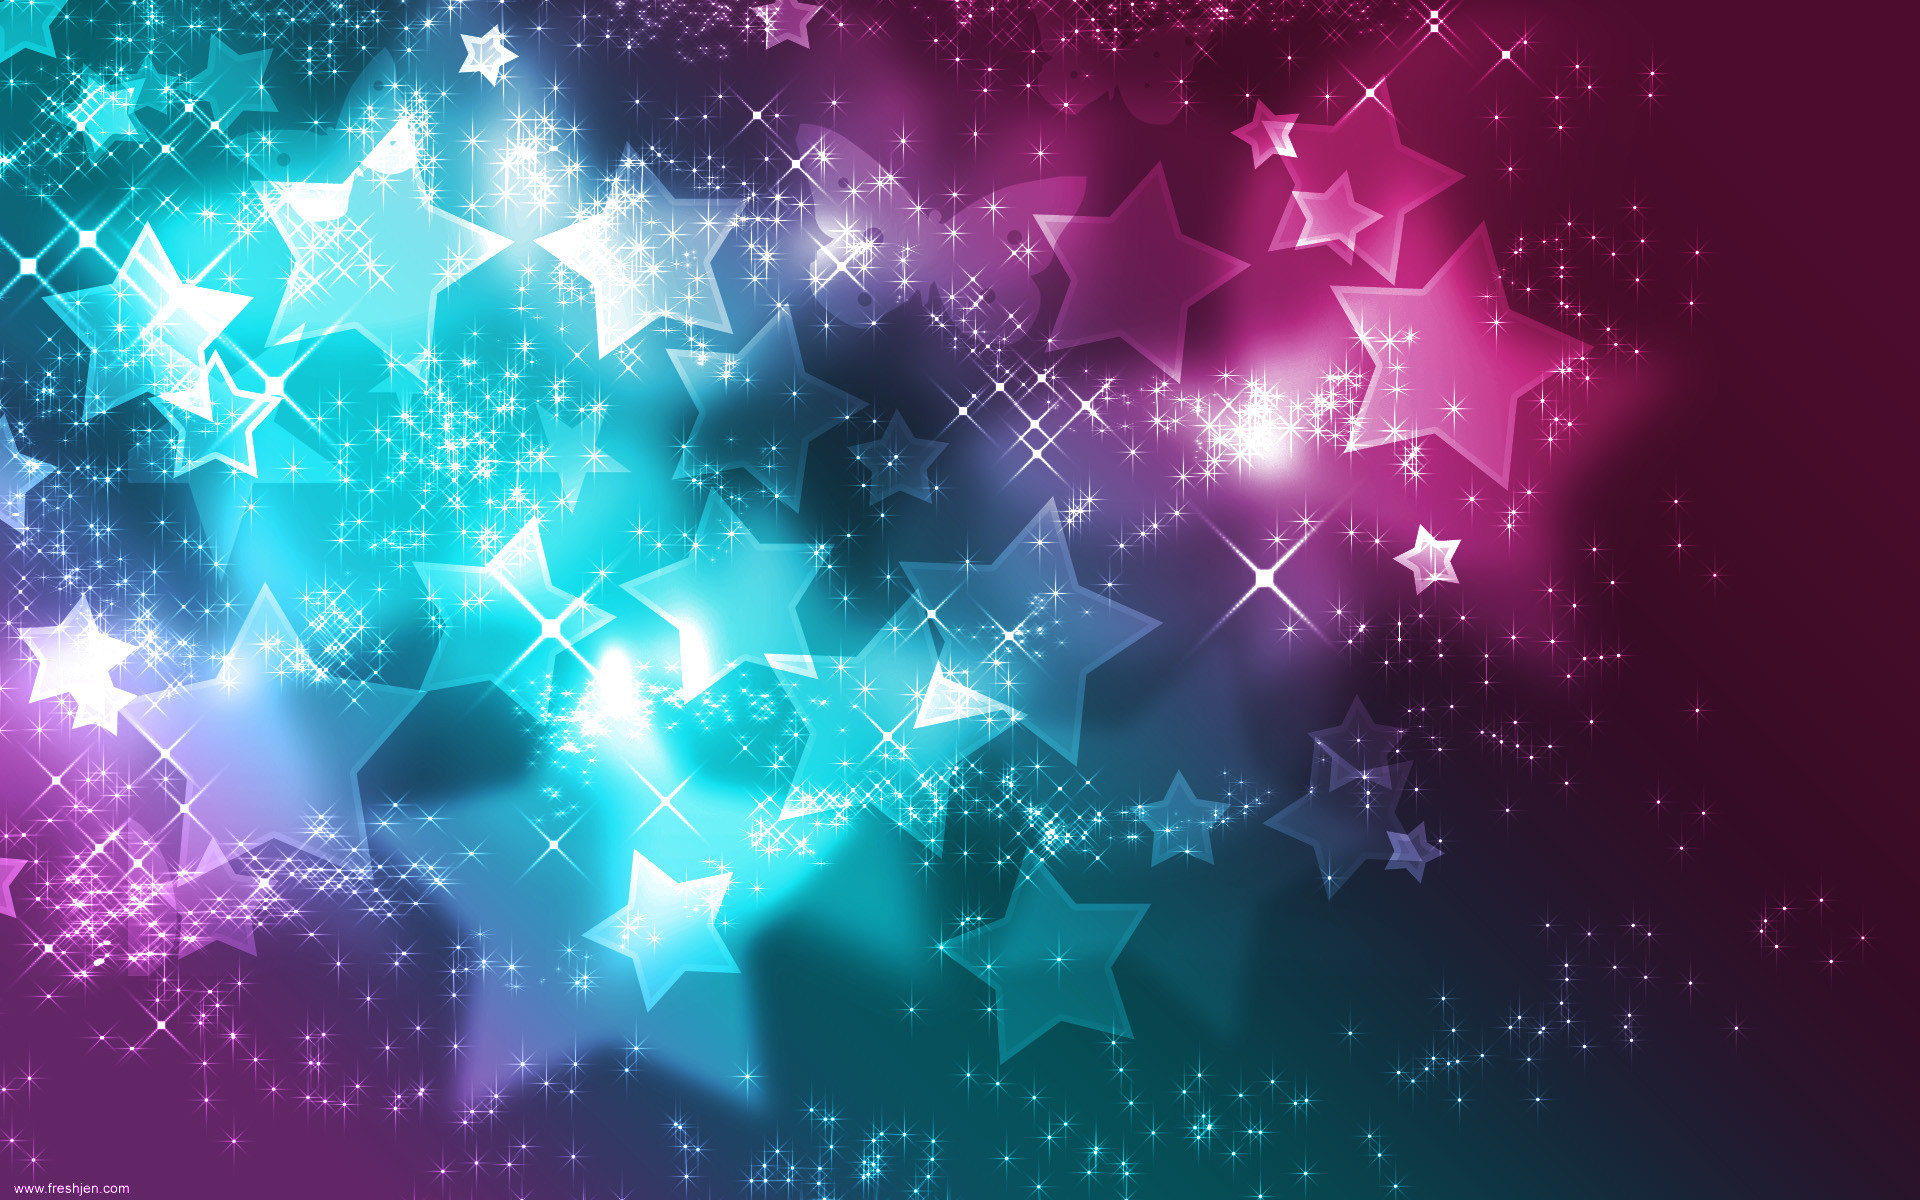 Cute Girly Backgrounds   twitter backgrounds   twitter backgrounds, free  twitter backgrounds .